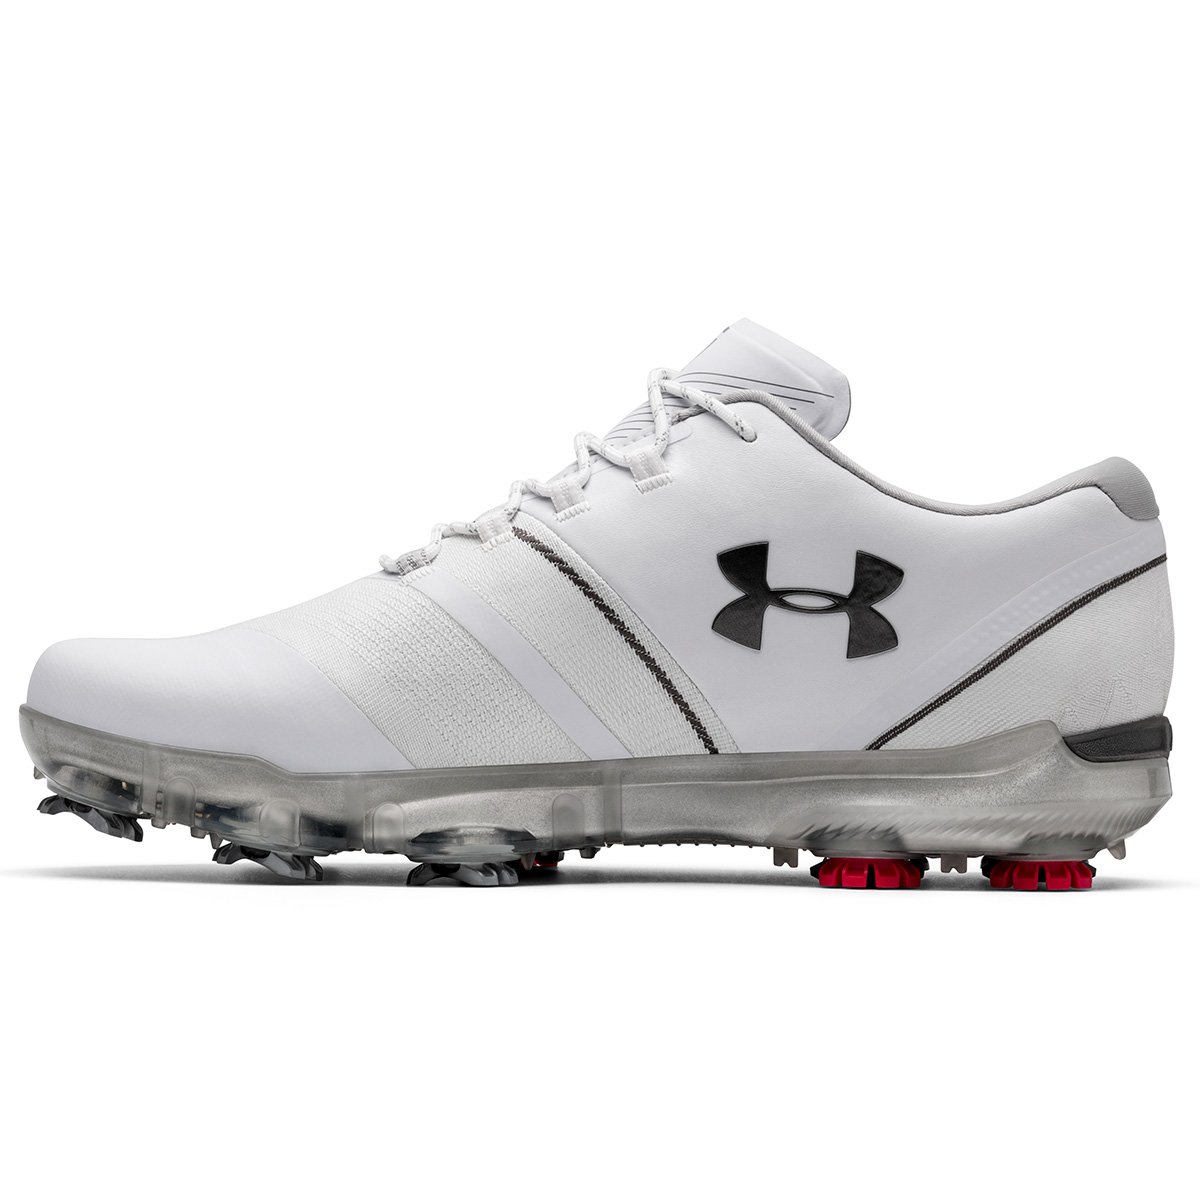 5b0dfdbb03ee Under Armour Spieth 3 Shoes from american golf